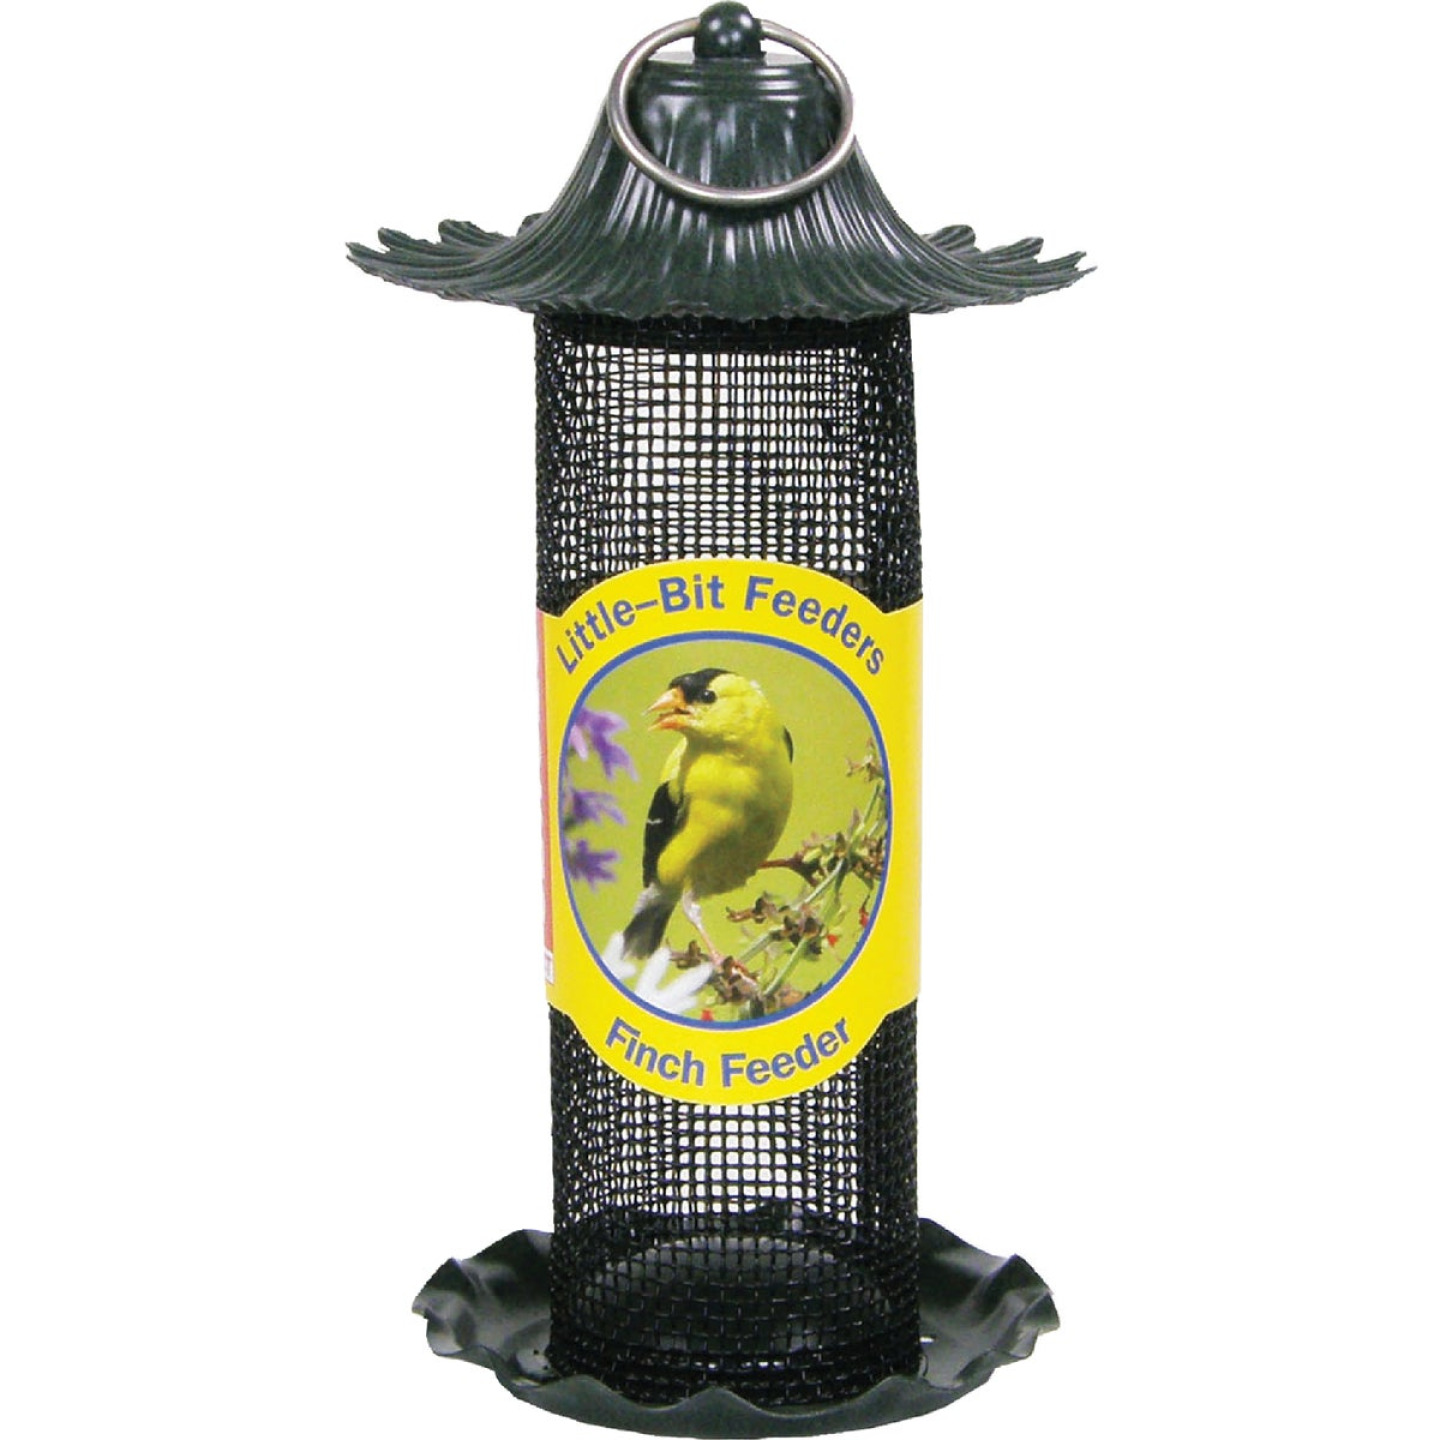 Stokes Select Little-Bit 9 In. 1/2 Lb. Capacity Finch Thistle Screen Feeder Image 2